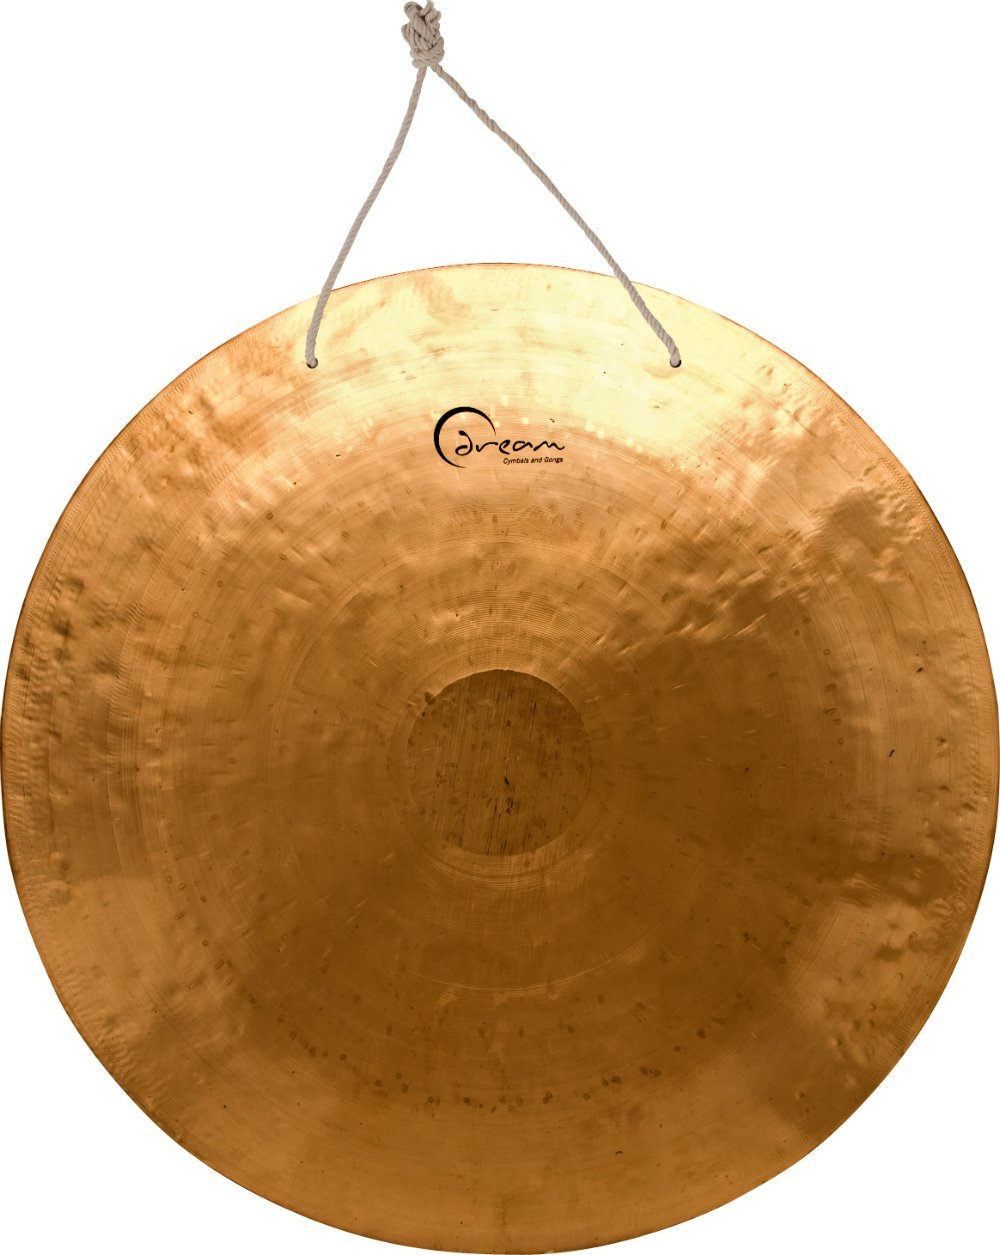 Dream 16'' Inch Wind(Feng) Gong w/ Mallet by Dream Cymbals & Gongs